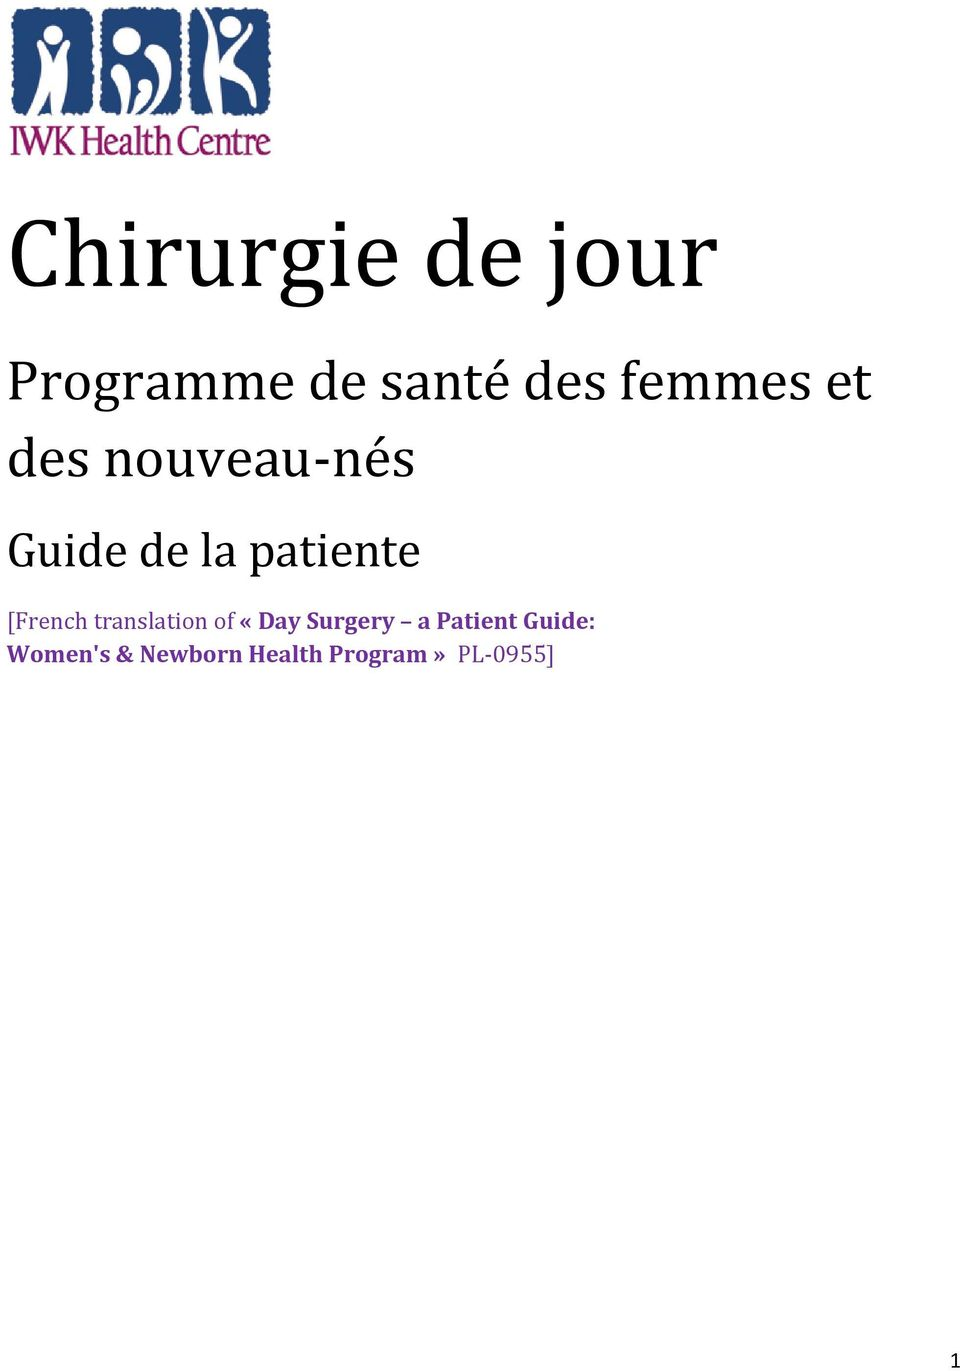 translation of «Day Surgery a Patient